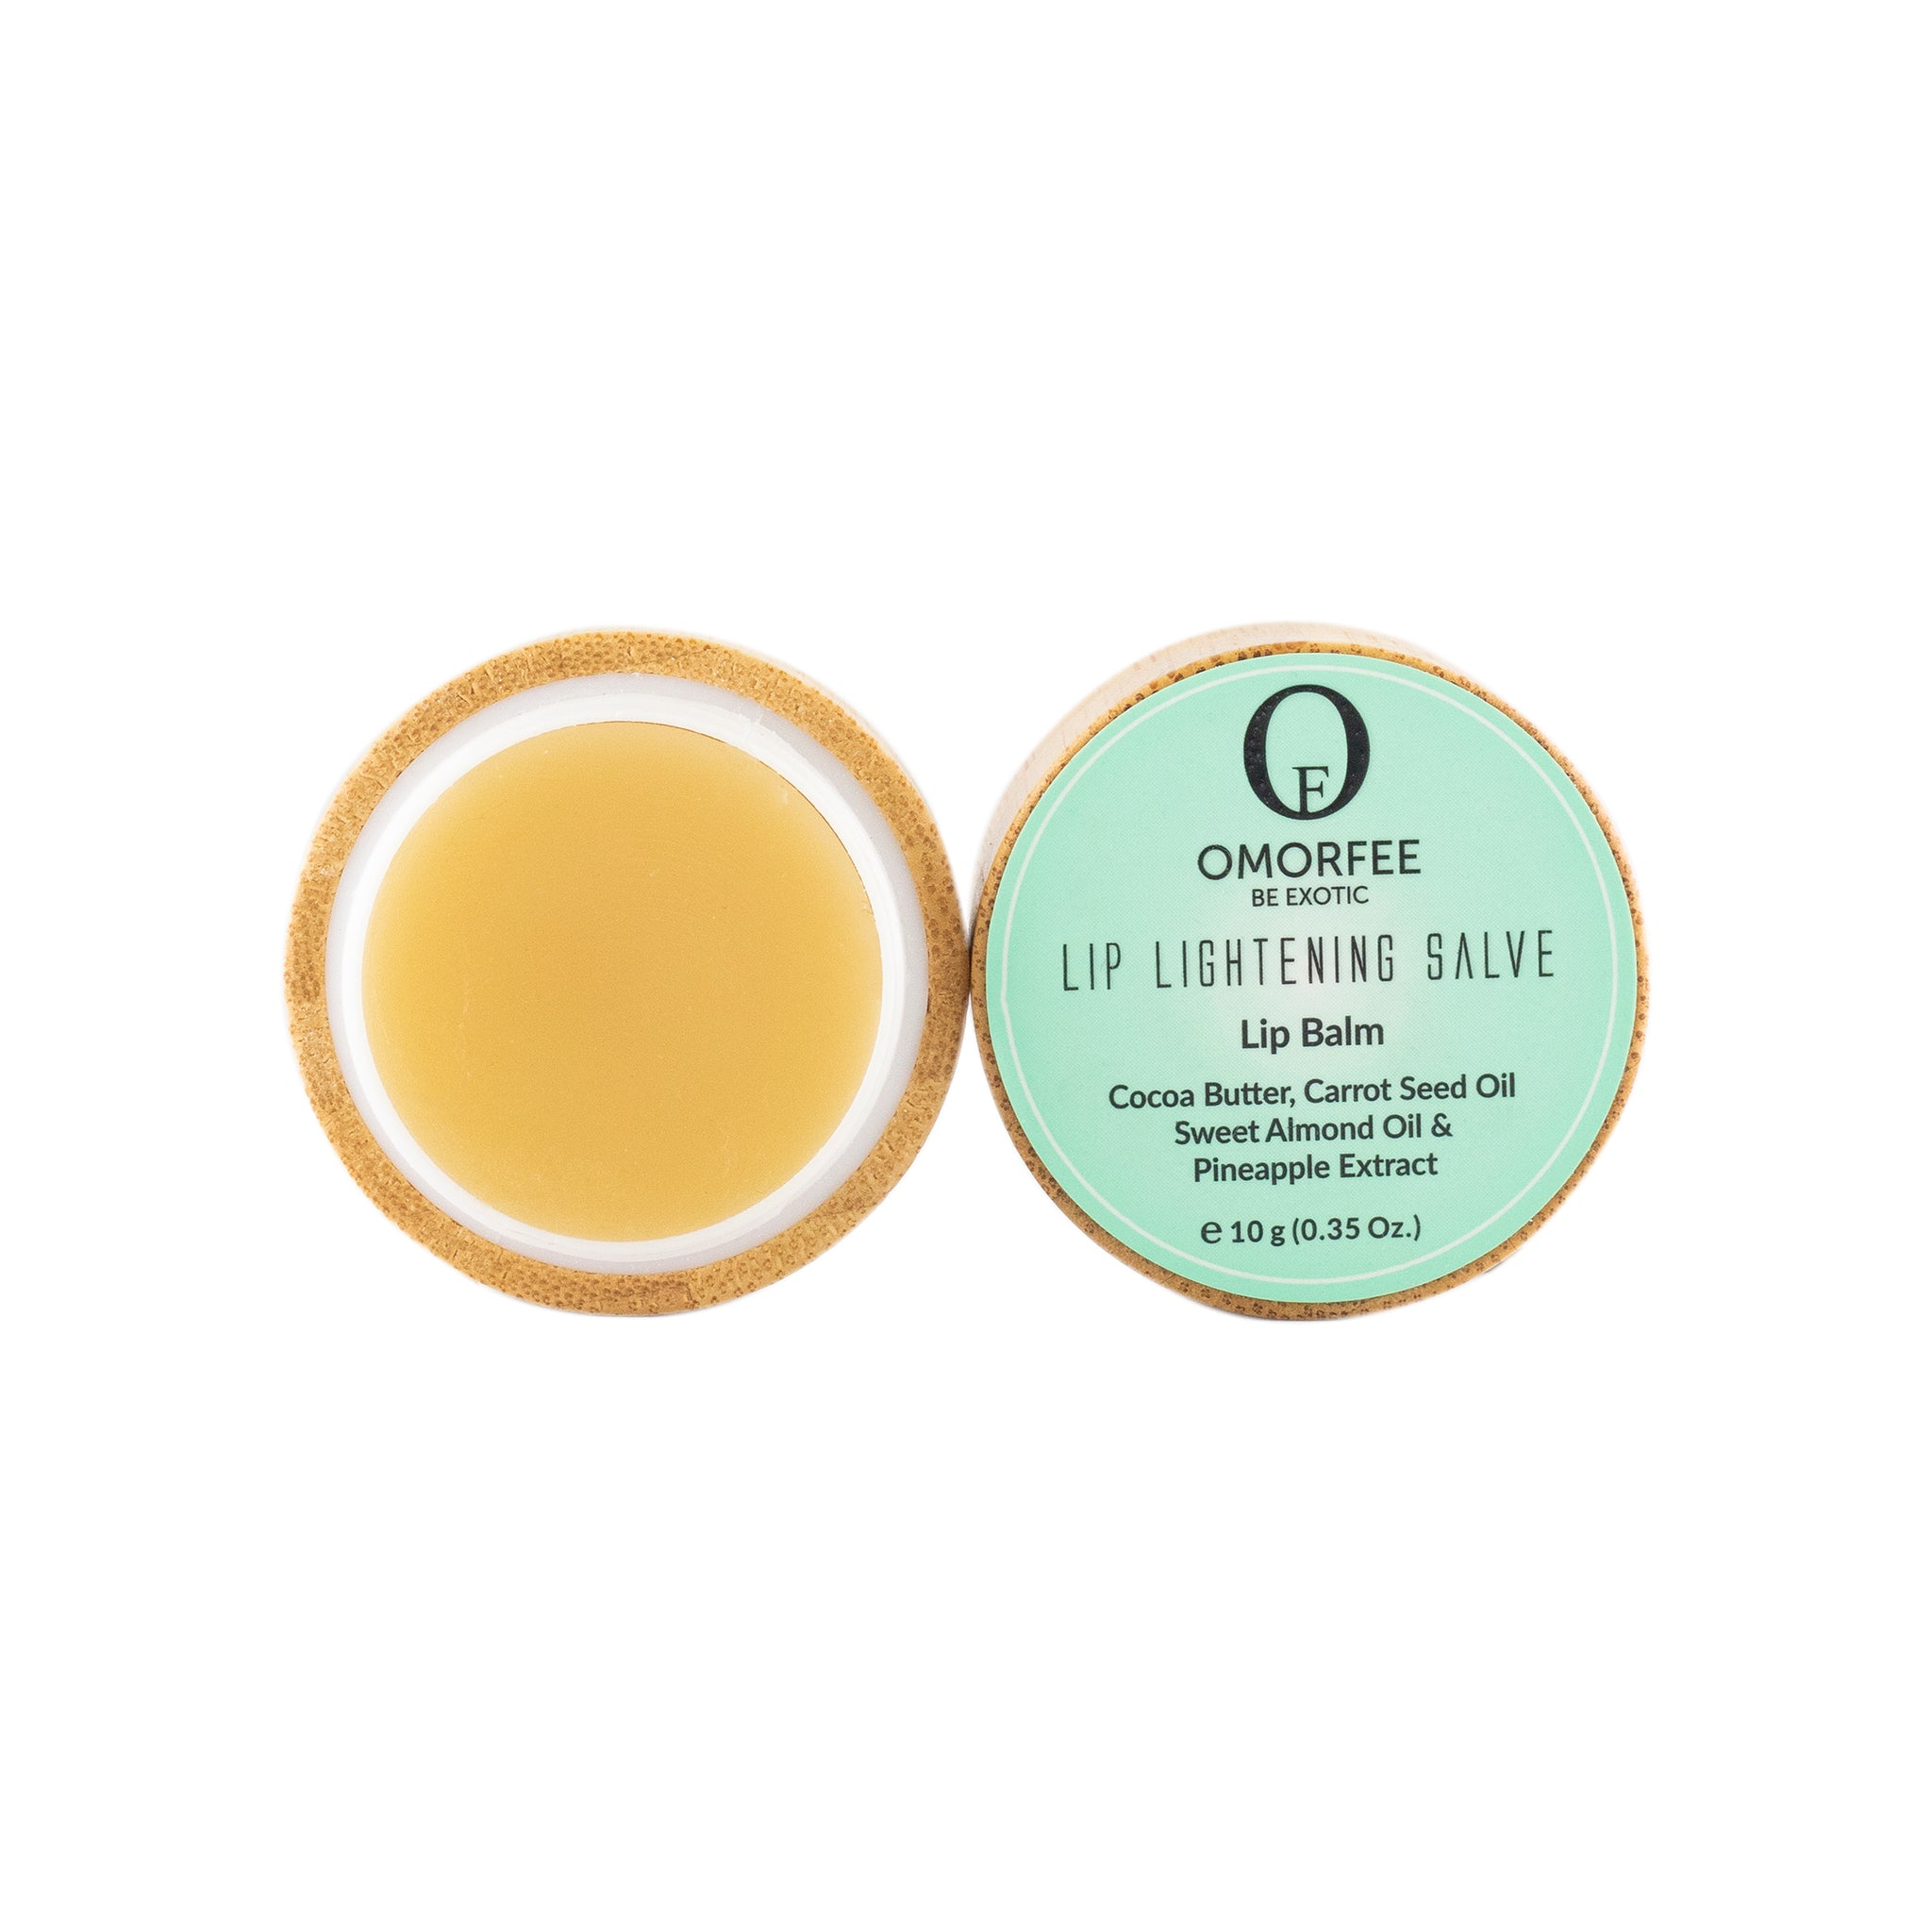 Lip Lightening Salve